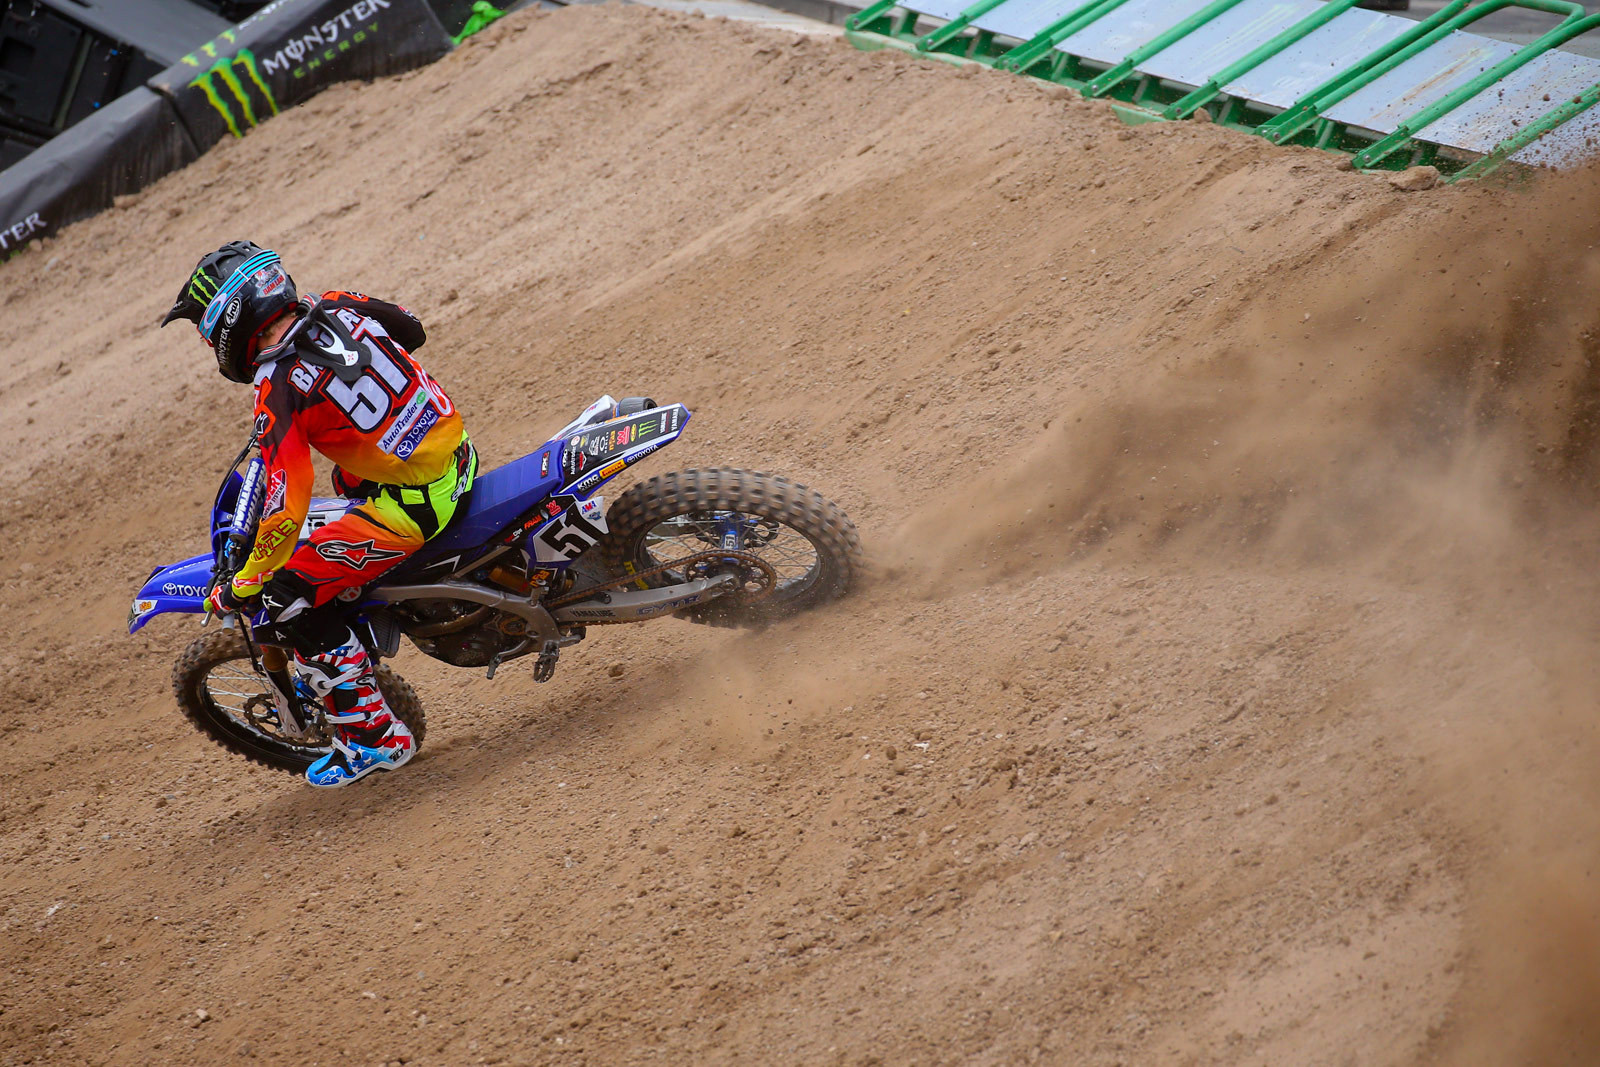 Justin Barcia - Vital MX Pit Bits: Monster Energy Cup - Motocross Pictures - Vital MX